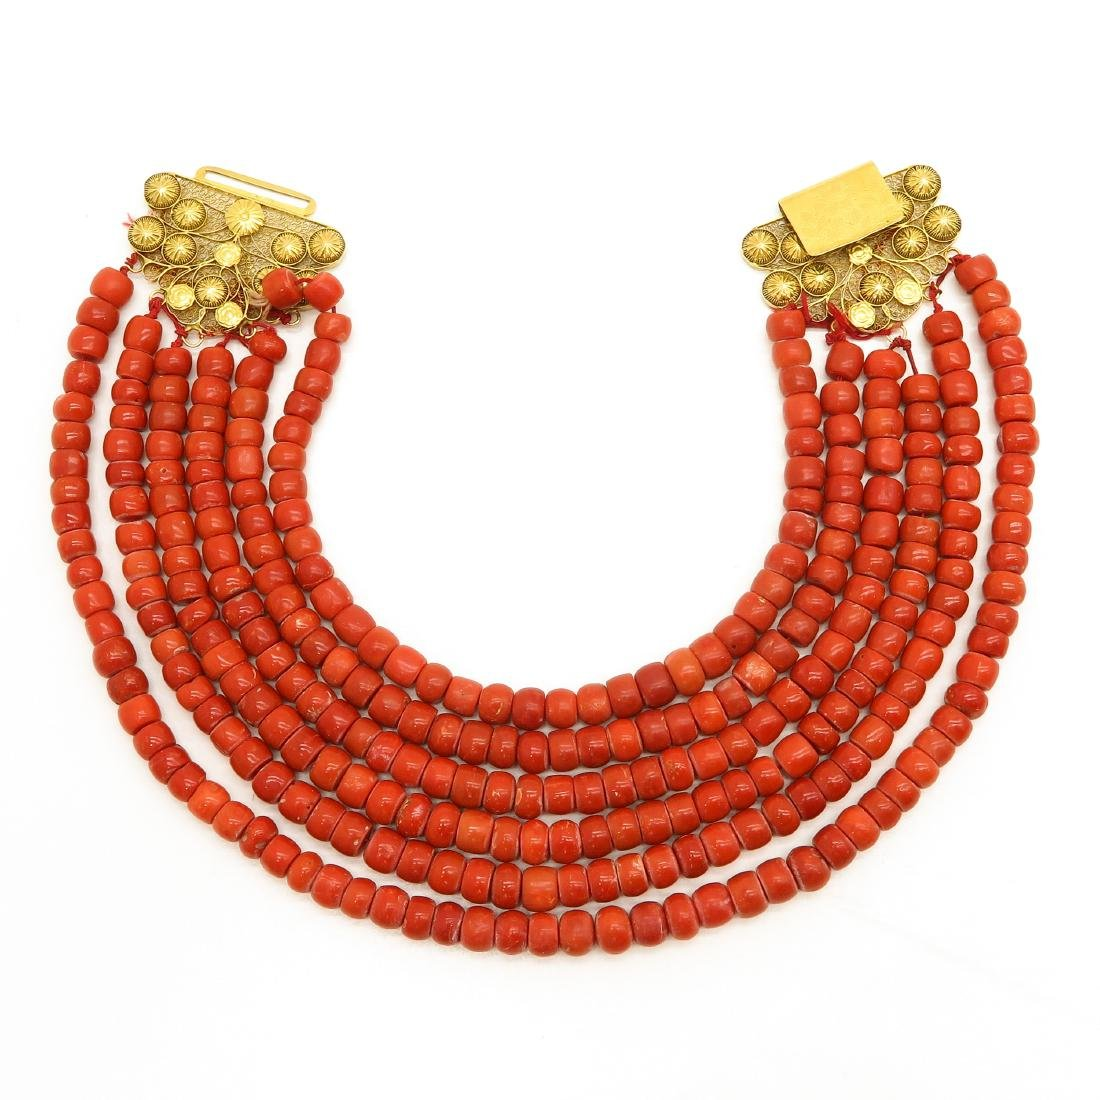 A 6 Strand 19th Century Red Coral Necklace & 14KG Clasp